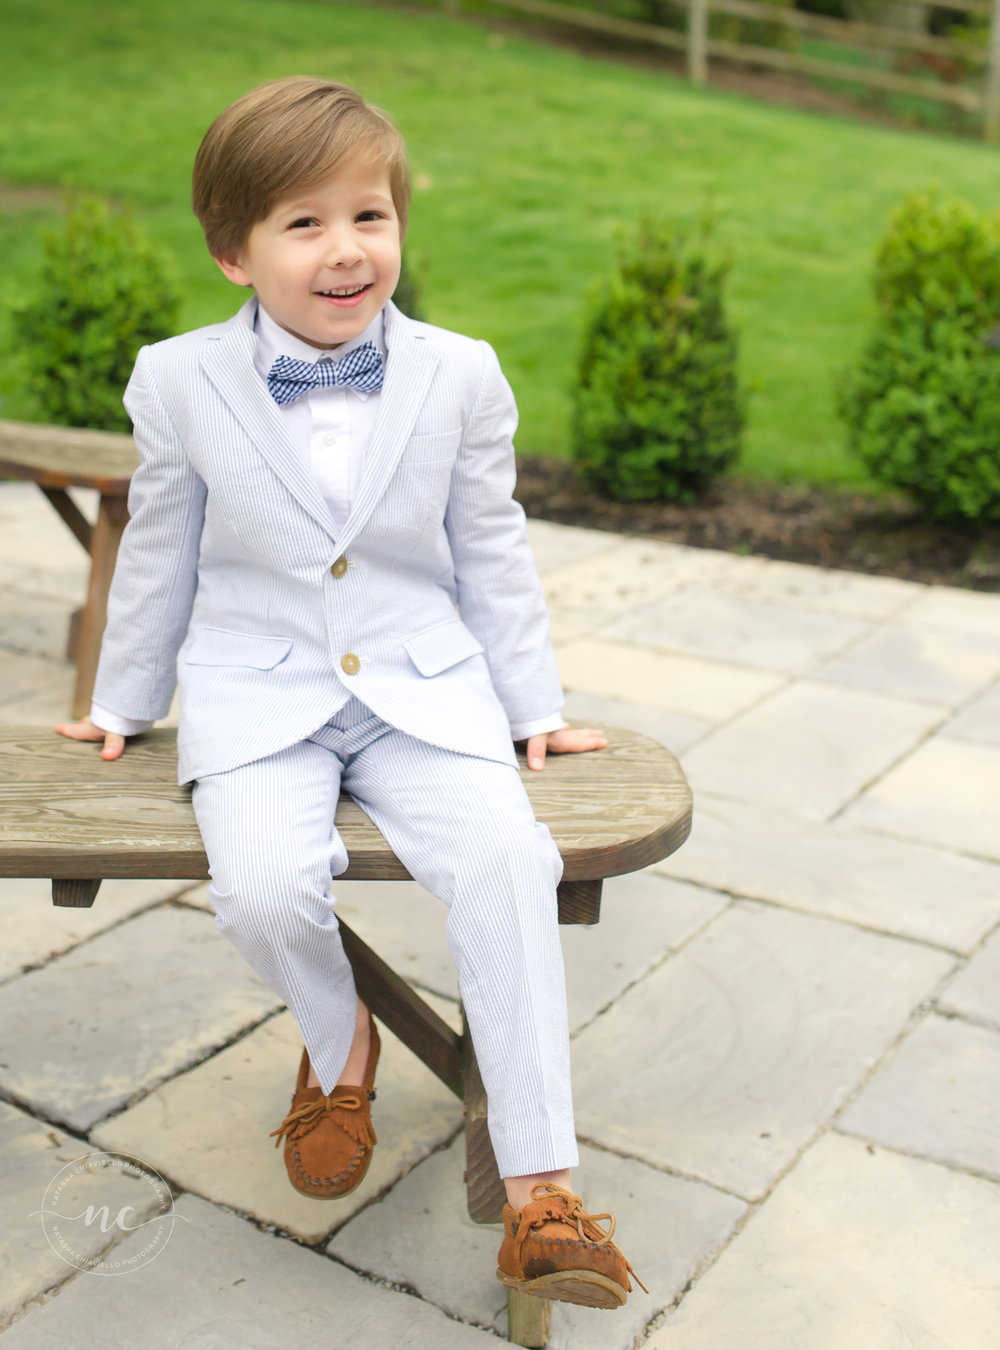 little boy in a suit and bowtie